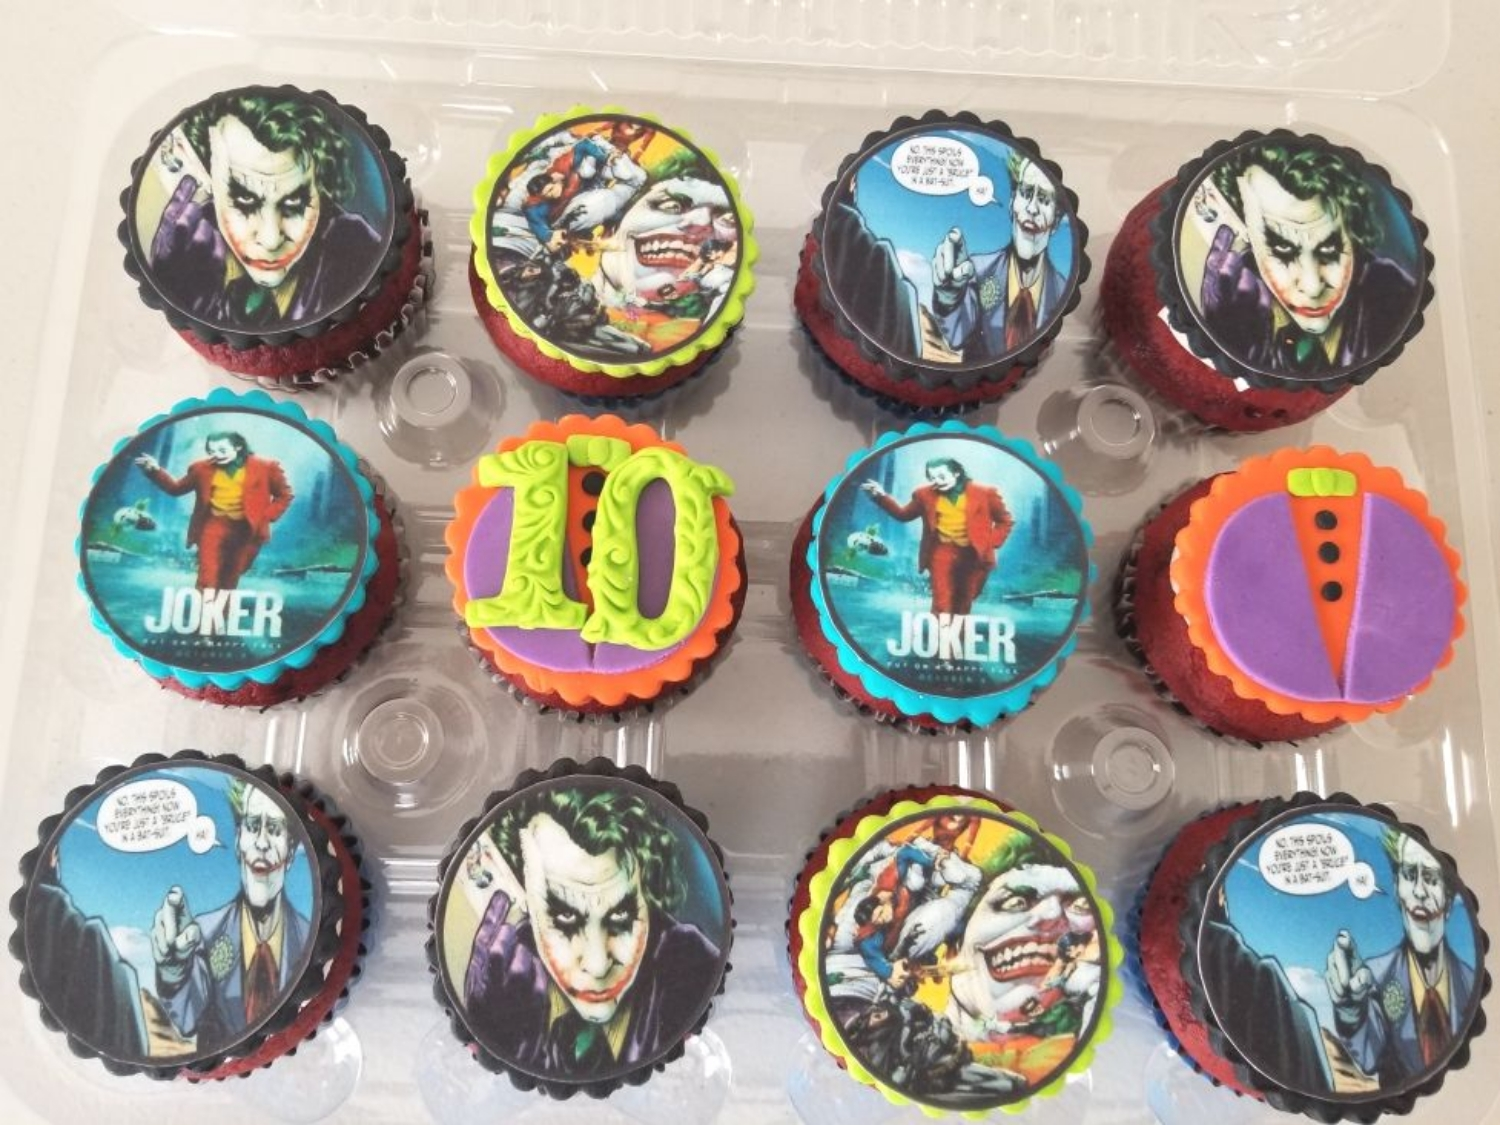 Joker Cupcakes